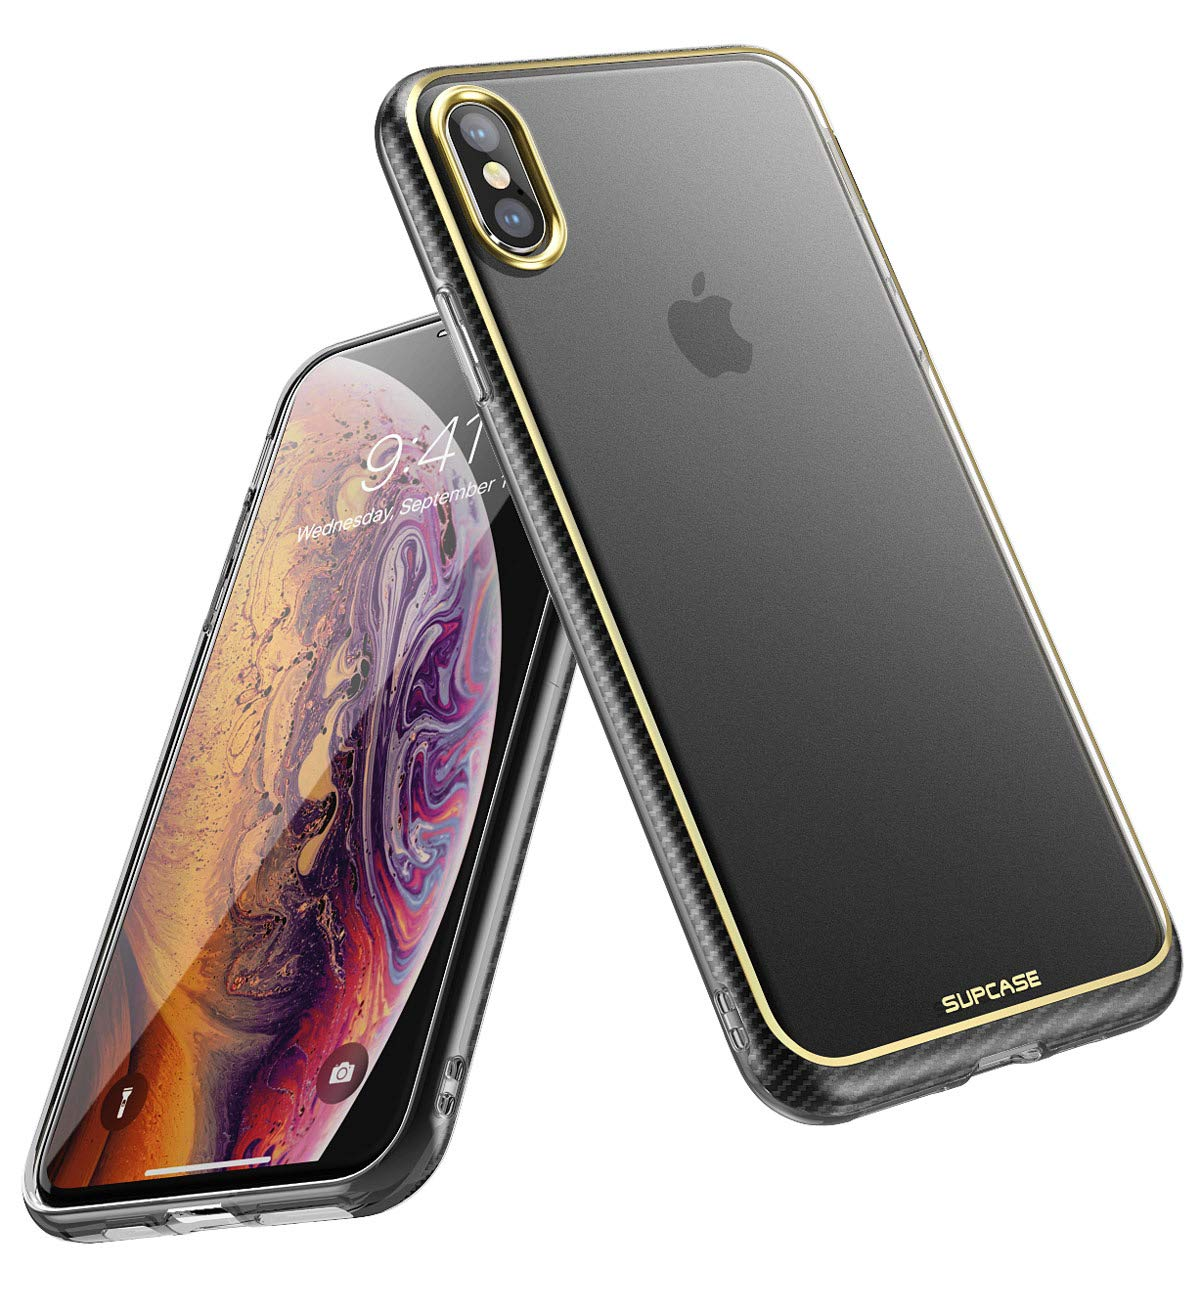 iPhone Xs Case, iPhone X Case, SUPCASE Unicorn Beetle Metro Series Slim Soft TPU Clear Cover for Apple iPhone X 2017/ iPhone Xs 2018 (Frost)